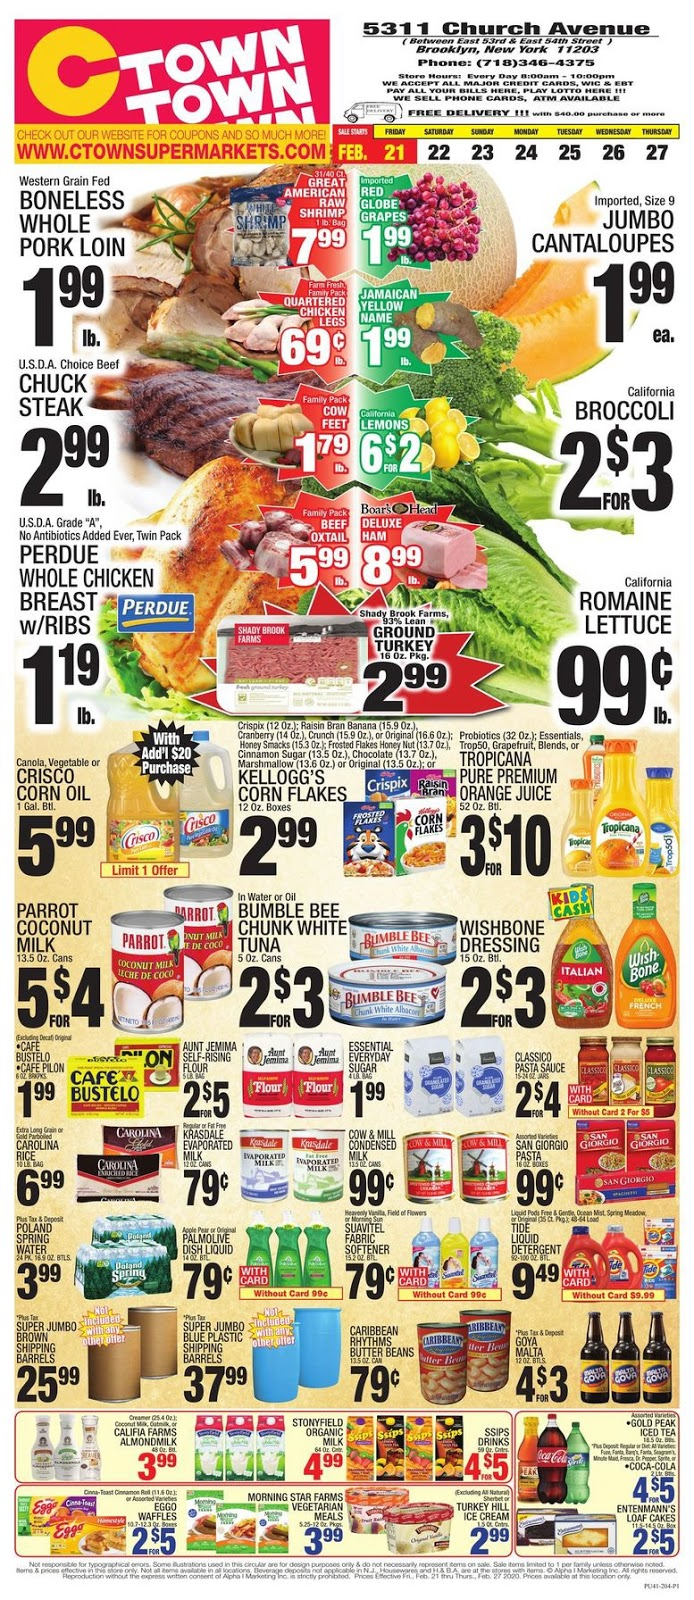 ⭐ CTown Ad 2/28/20 ⭐ CTown Weekly Ad February 28 2020